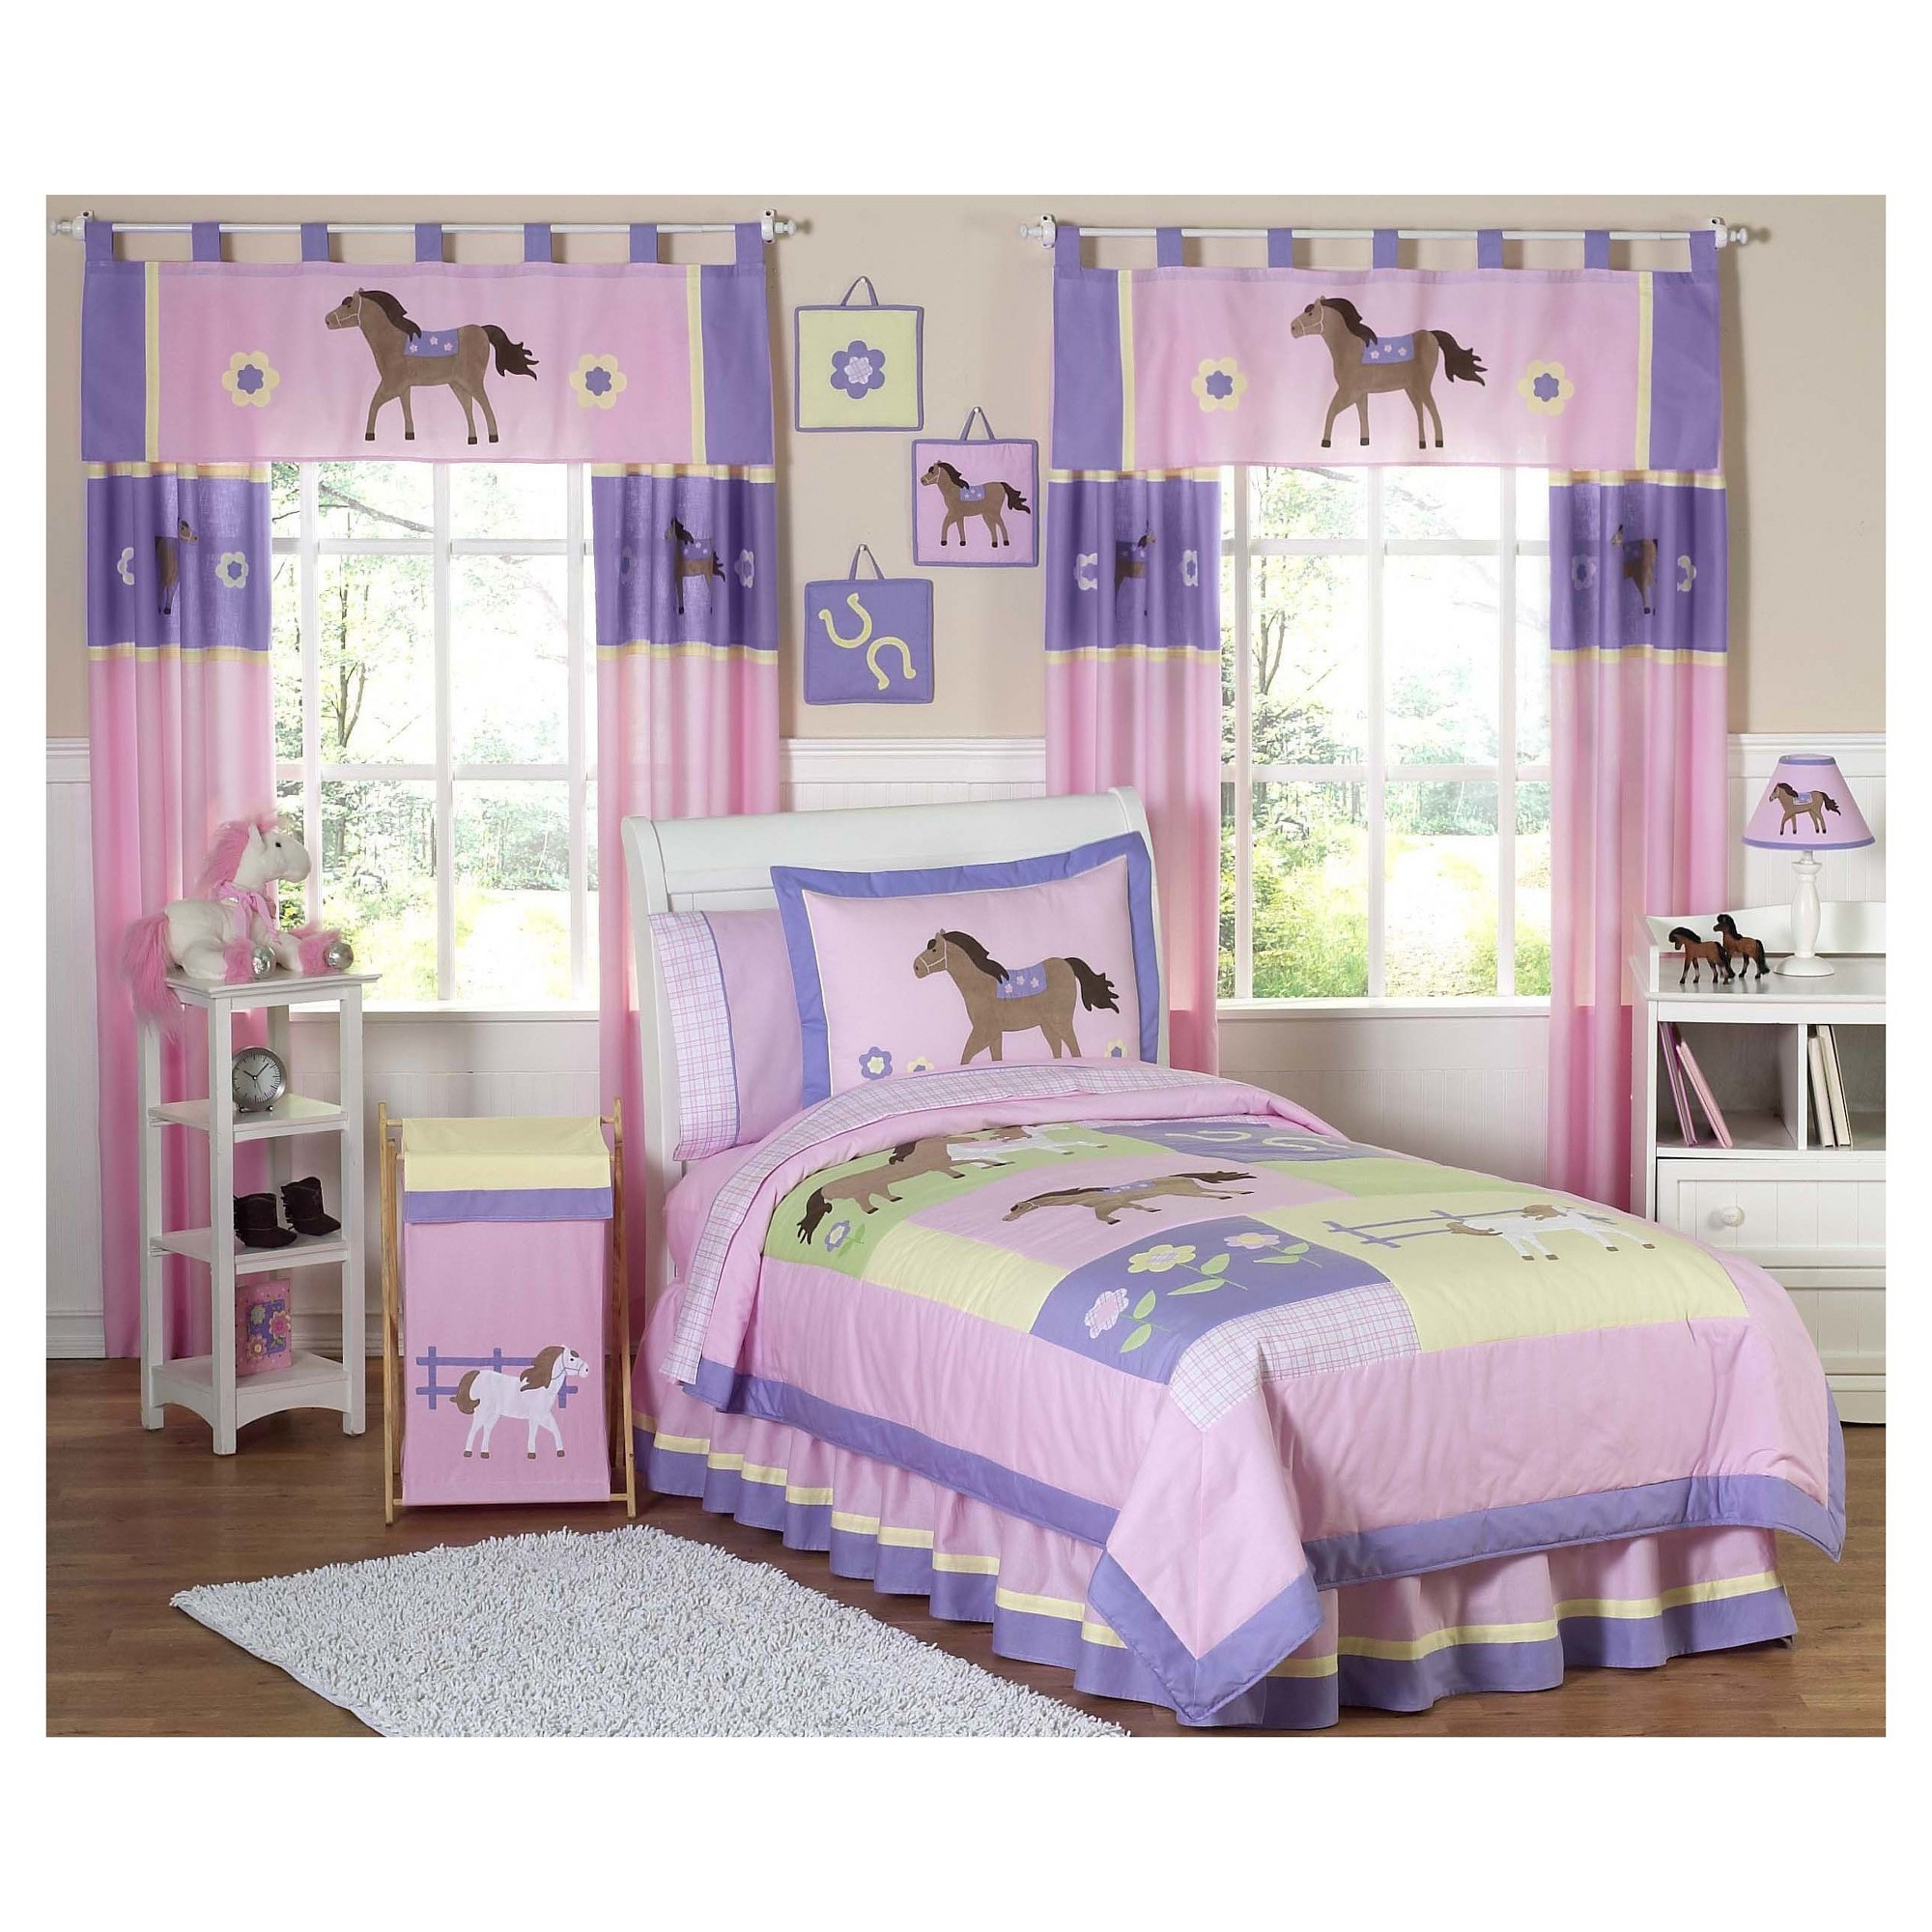 lace sets purple bedding bedroom horse collections teenage neon teen grey cool coverlet blue comforters bedspreads colorful bedspread cute cheap comforter gold croscill girl